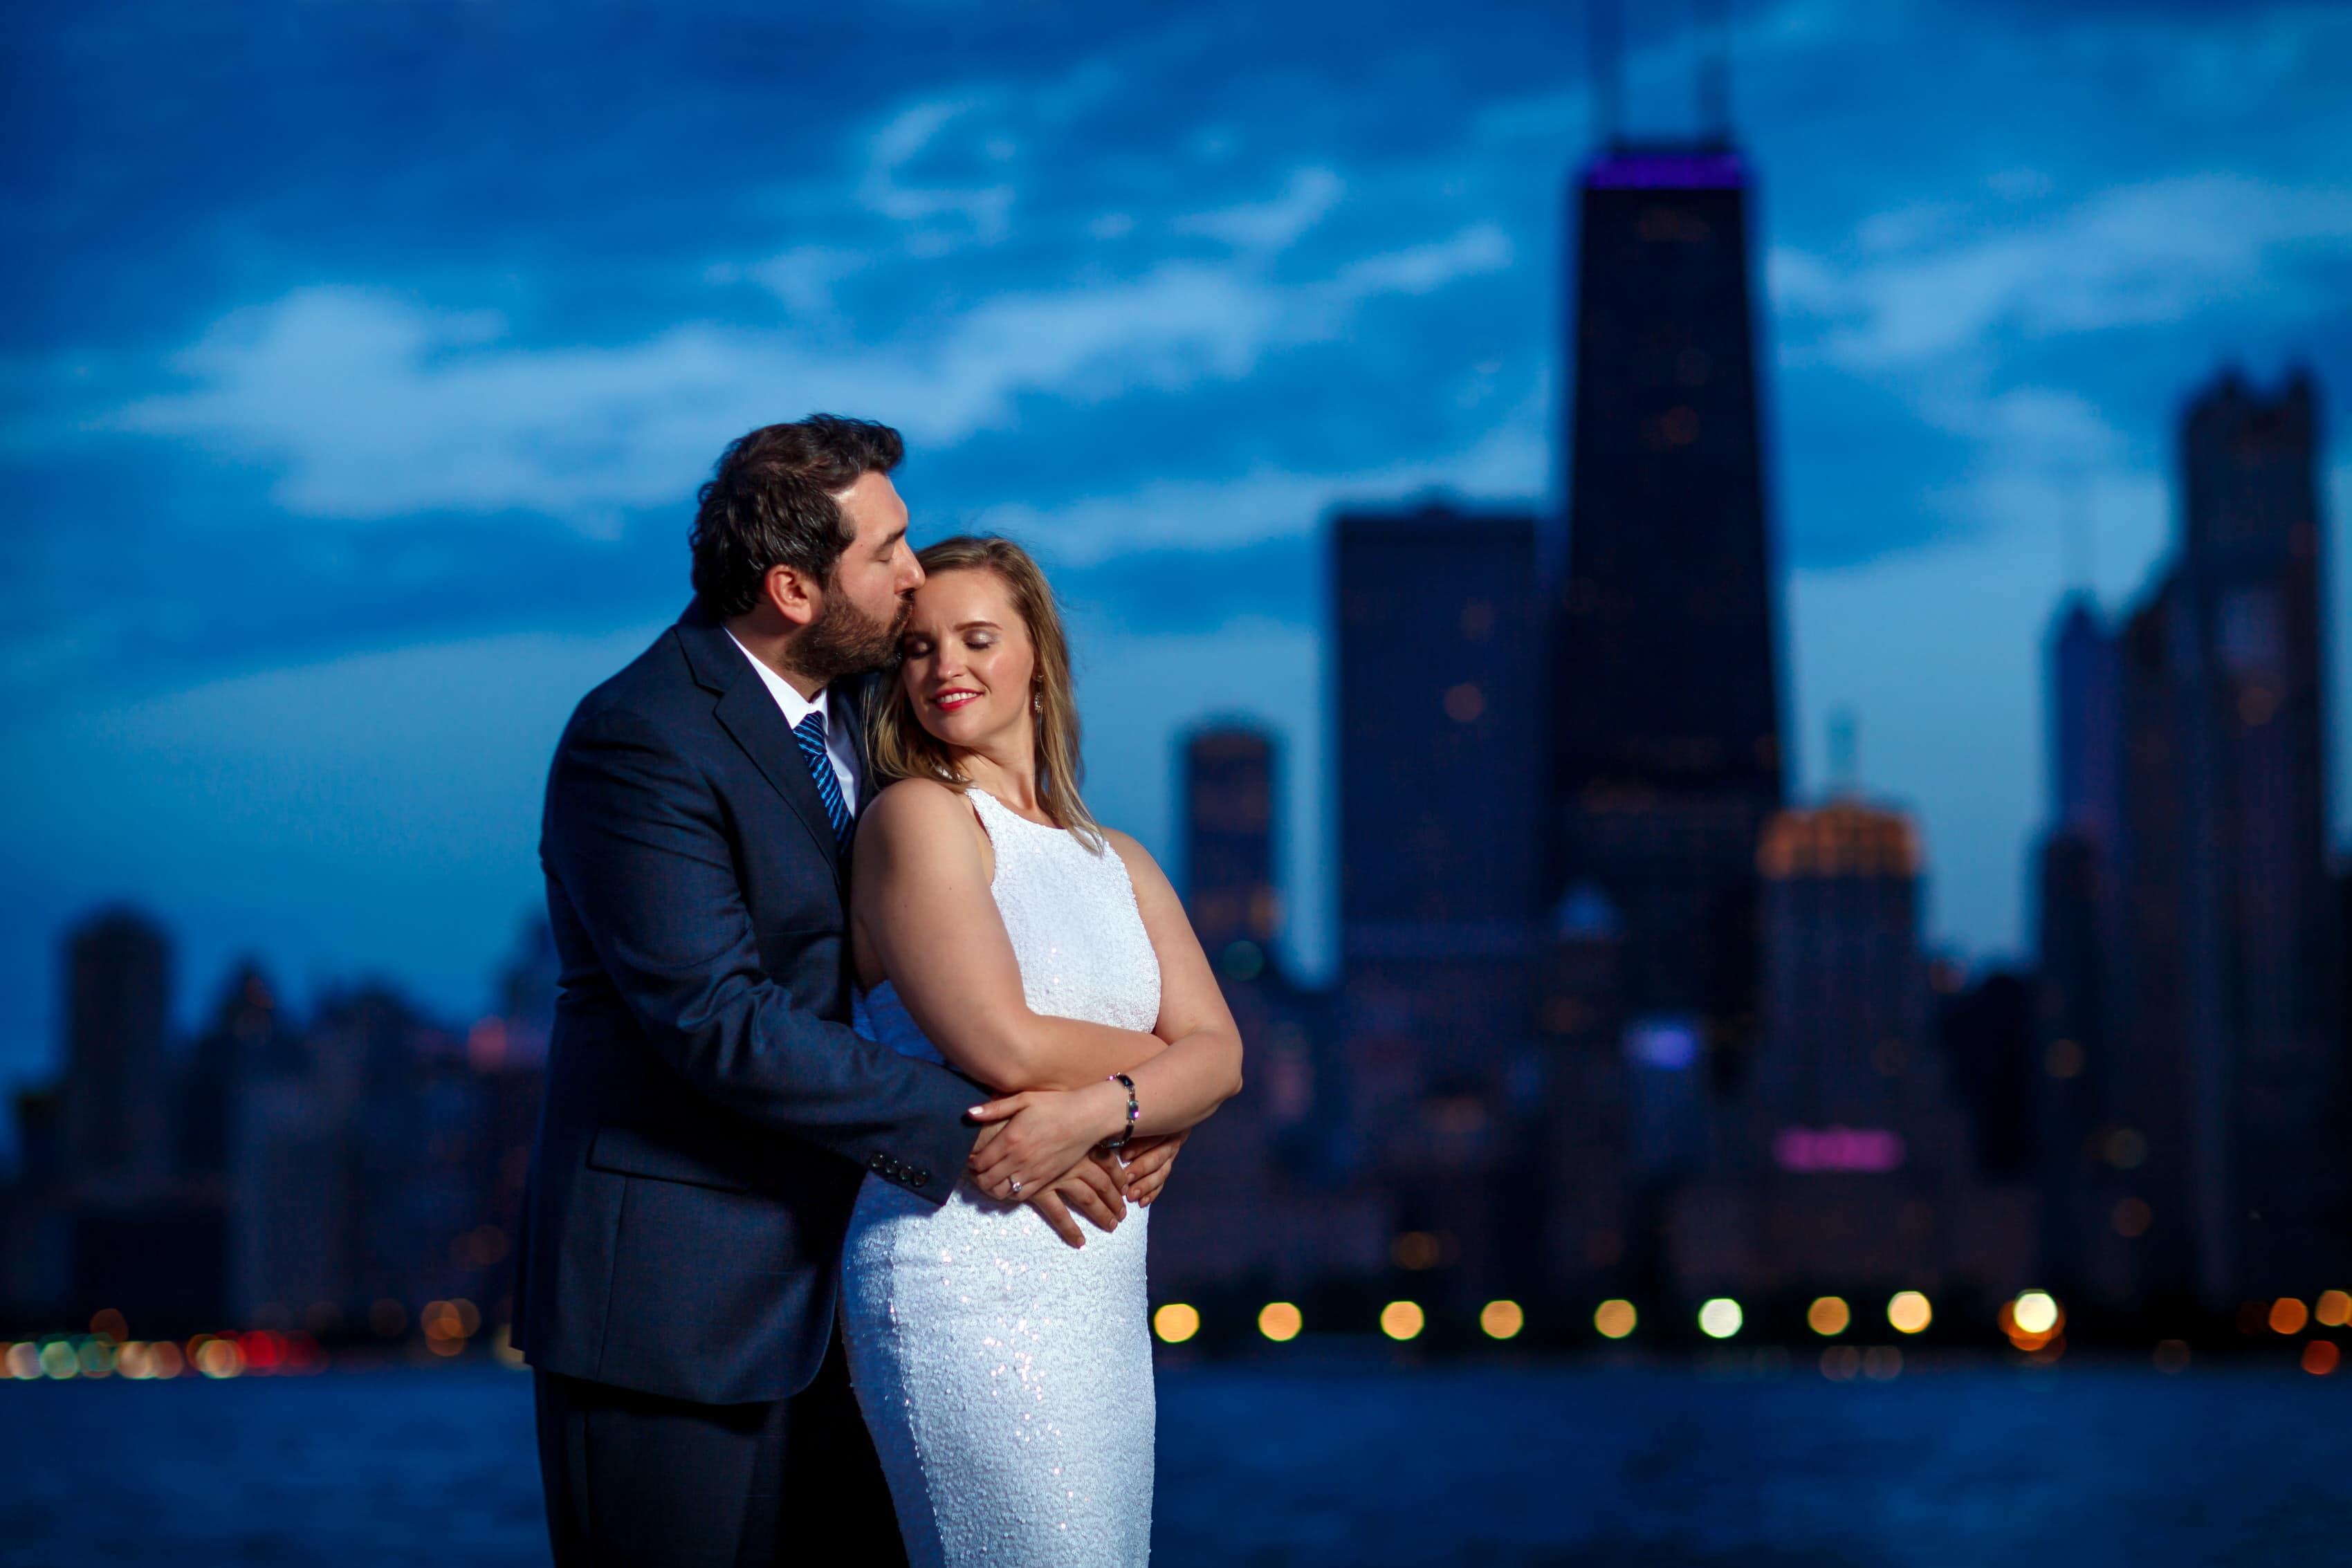 North Avenue Beach Engagement Photos: Amy & Robert